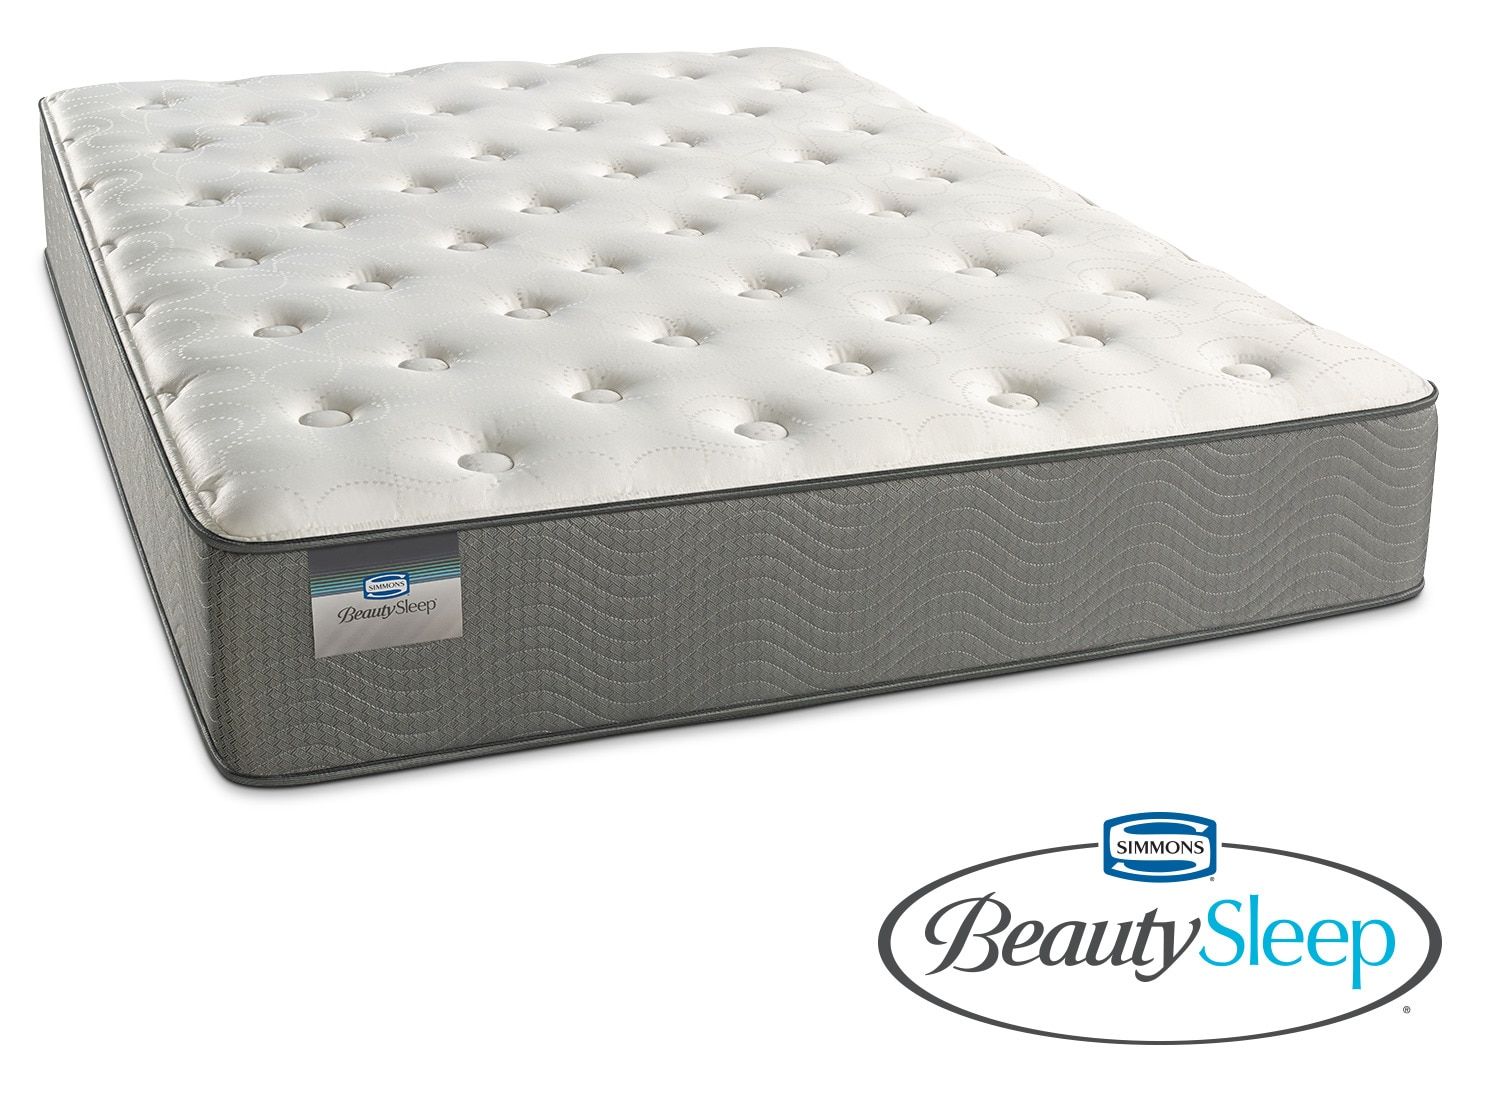 Mattresses and Bedding - French Grey Plush Queen Mattress